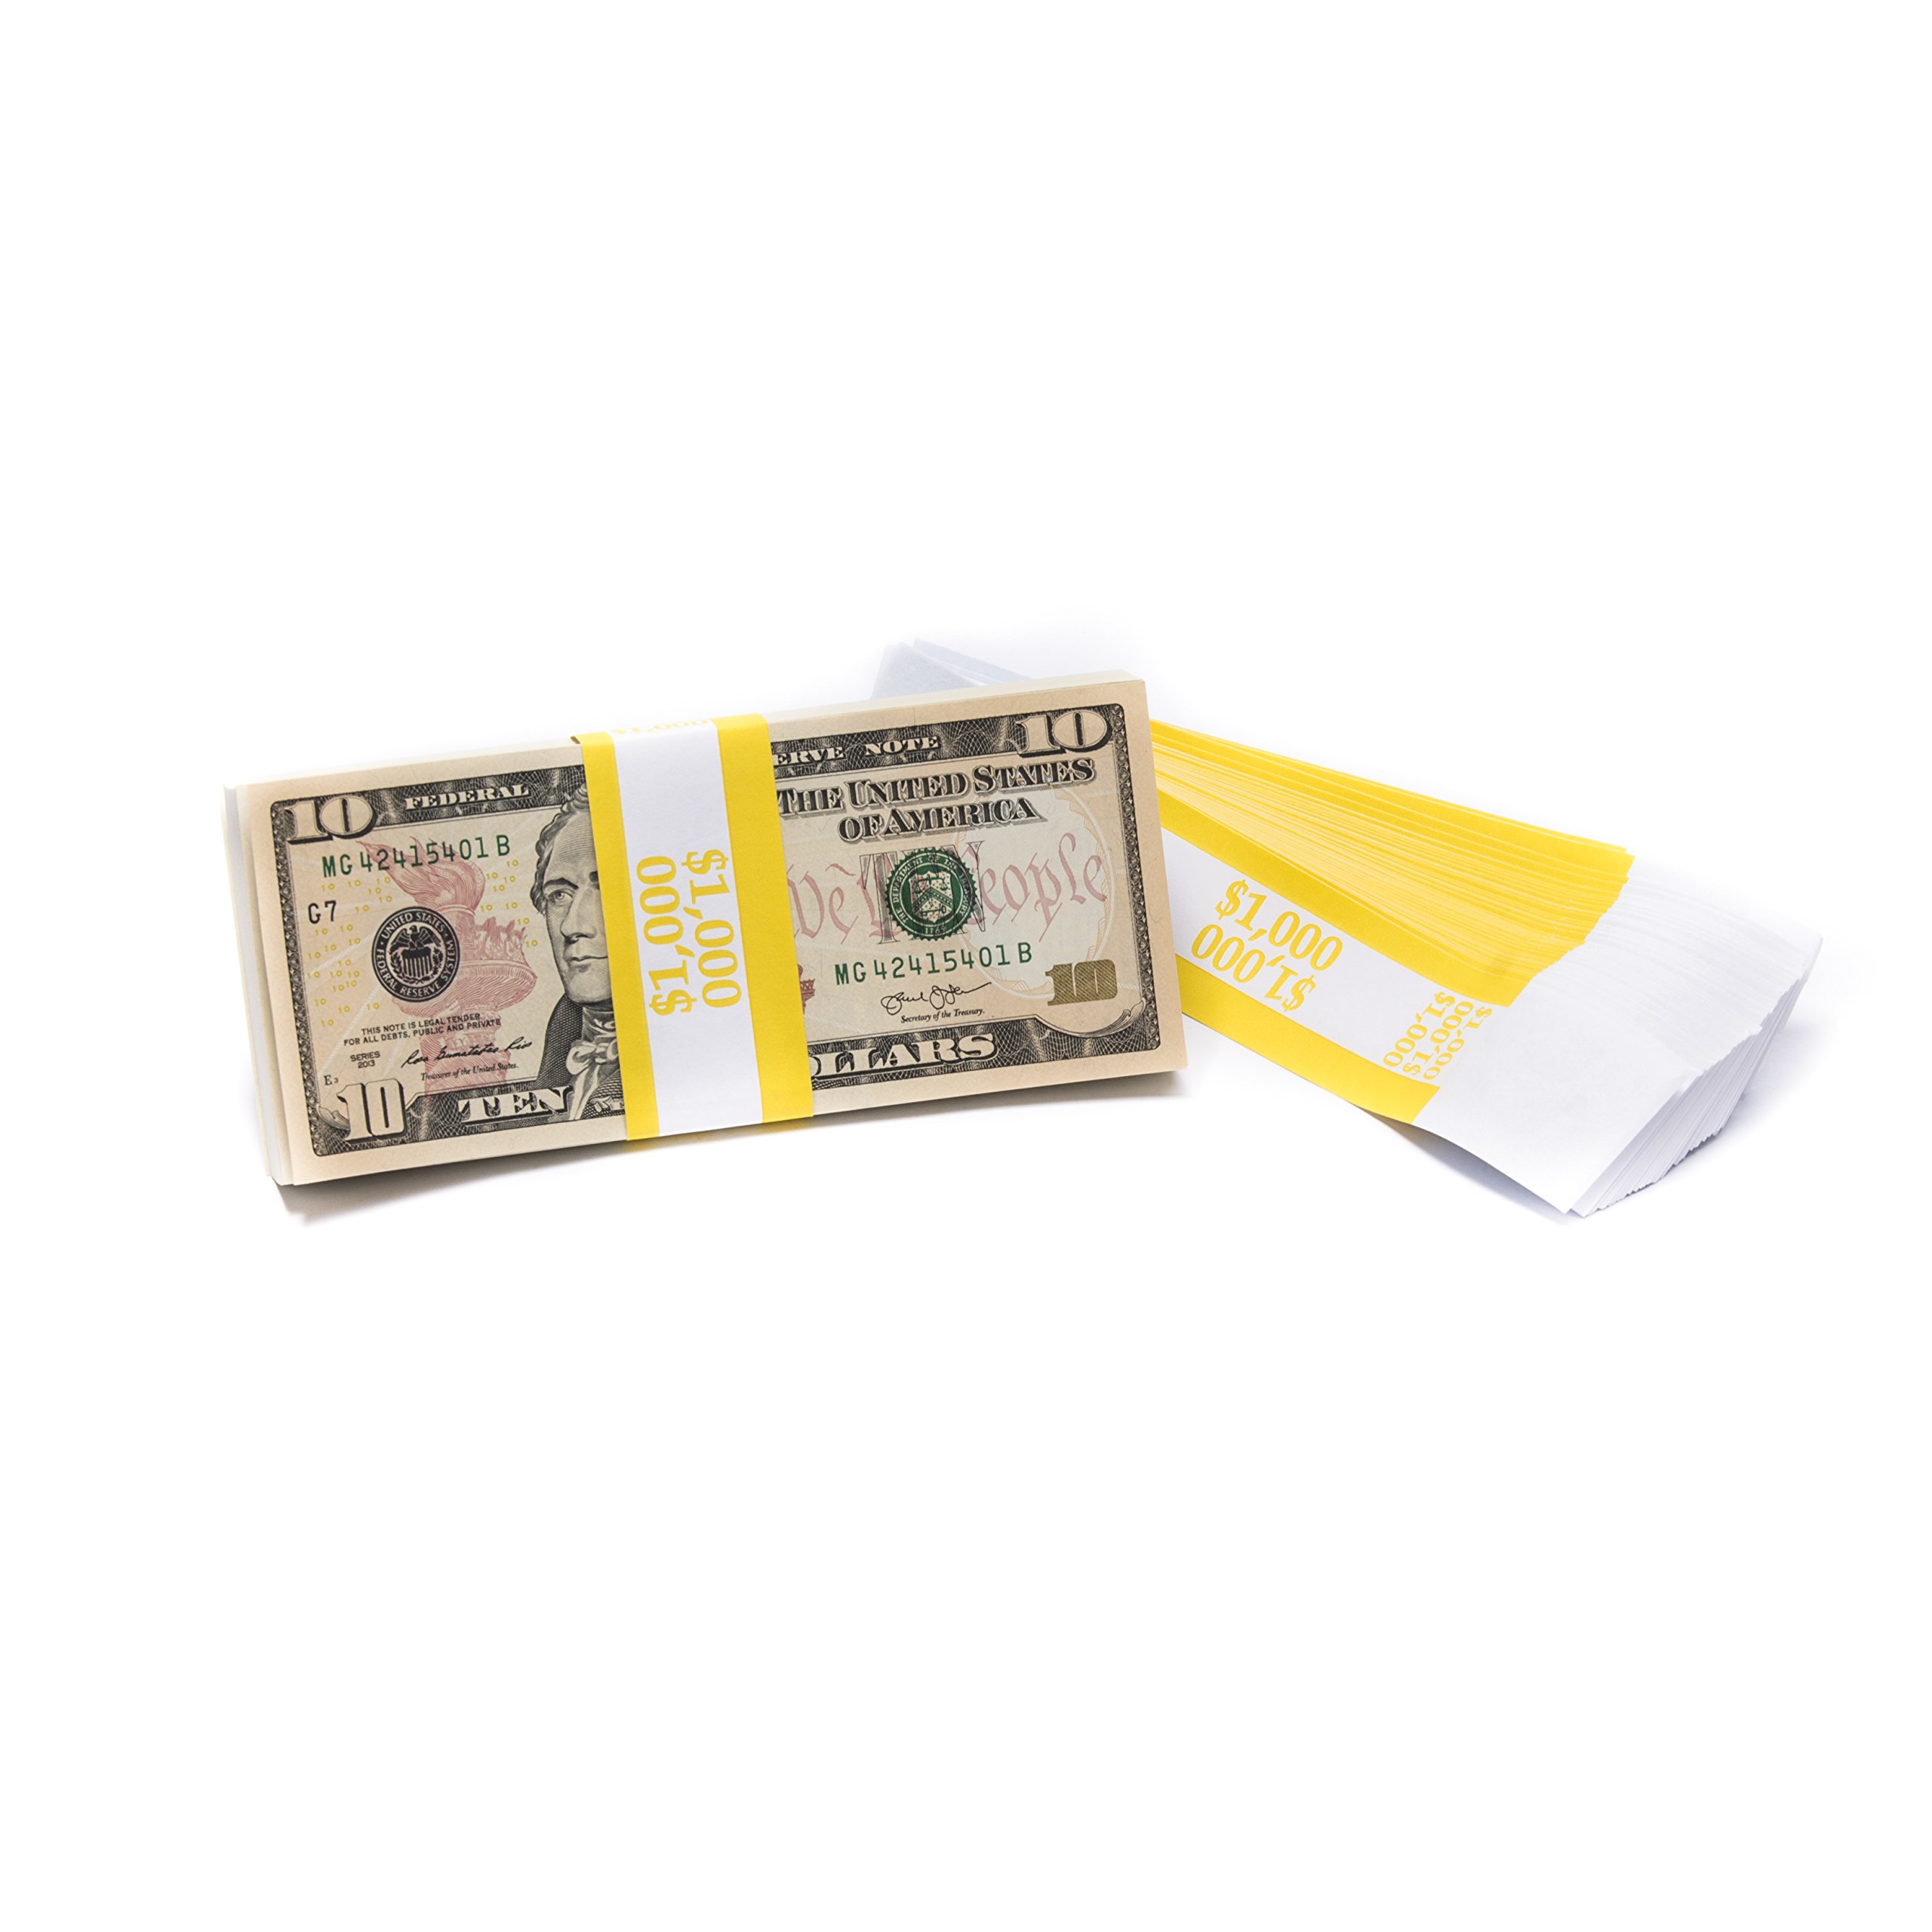 Barred ABA $1,000 Currency Band Bundles (1,000 Bands)